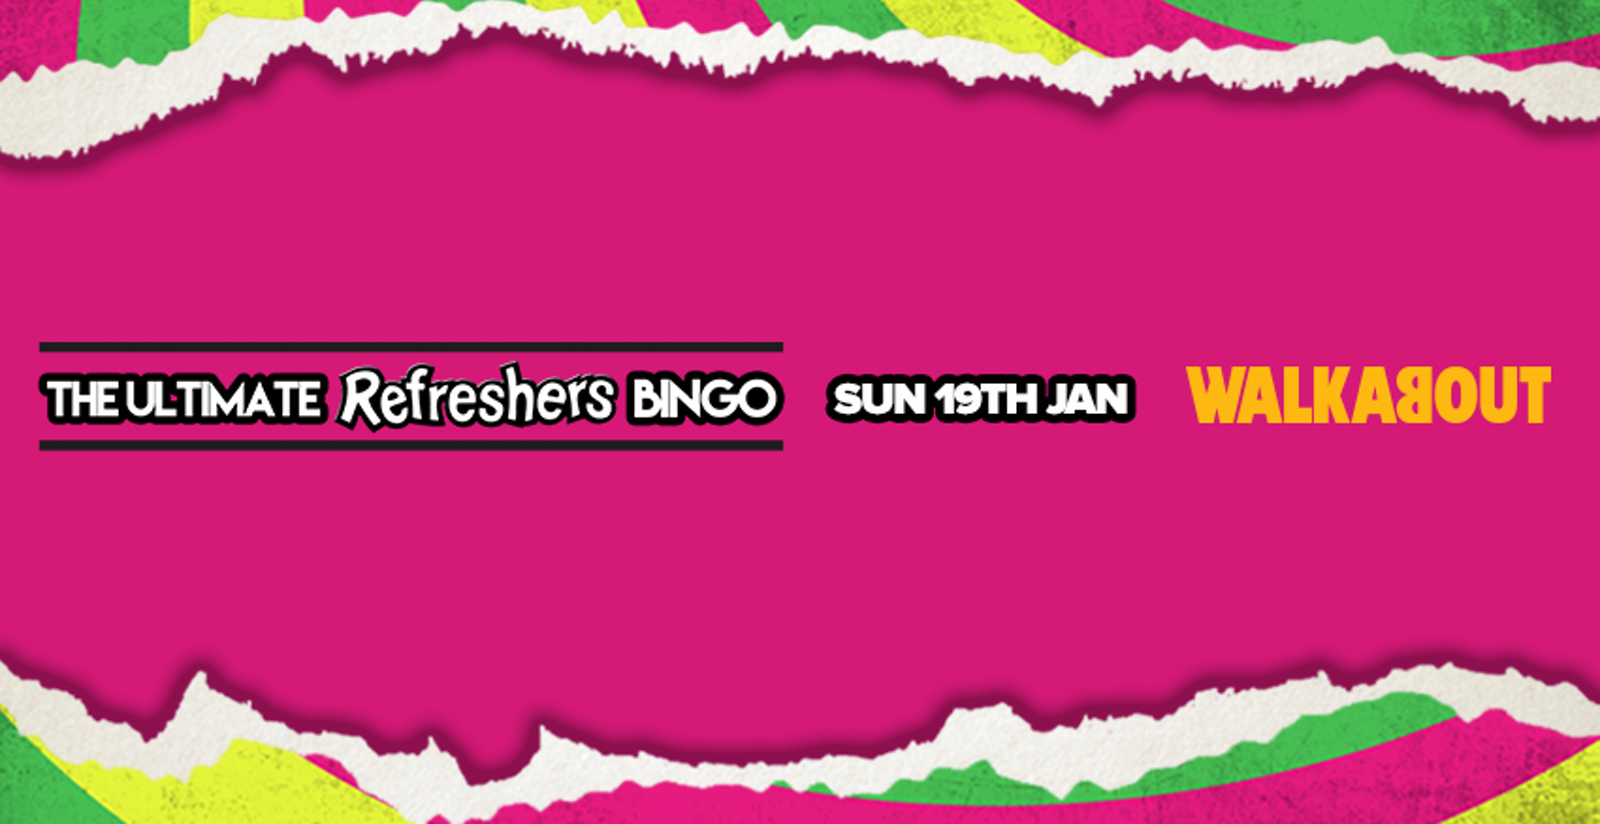 The Ultimate Refreshers Bingo! Sunday 19th January.